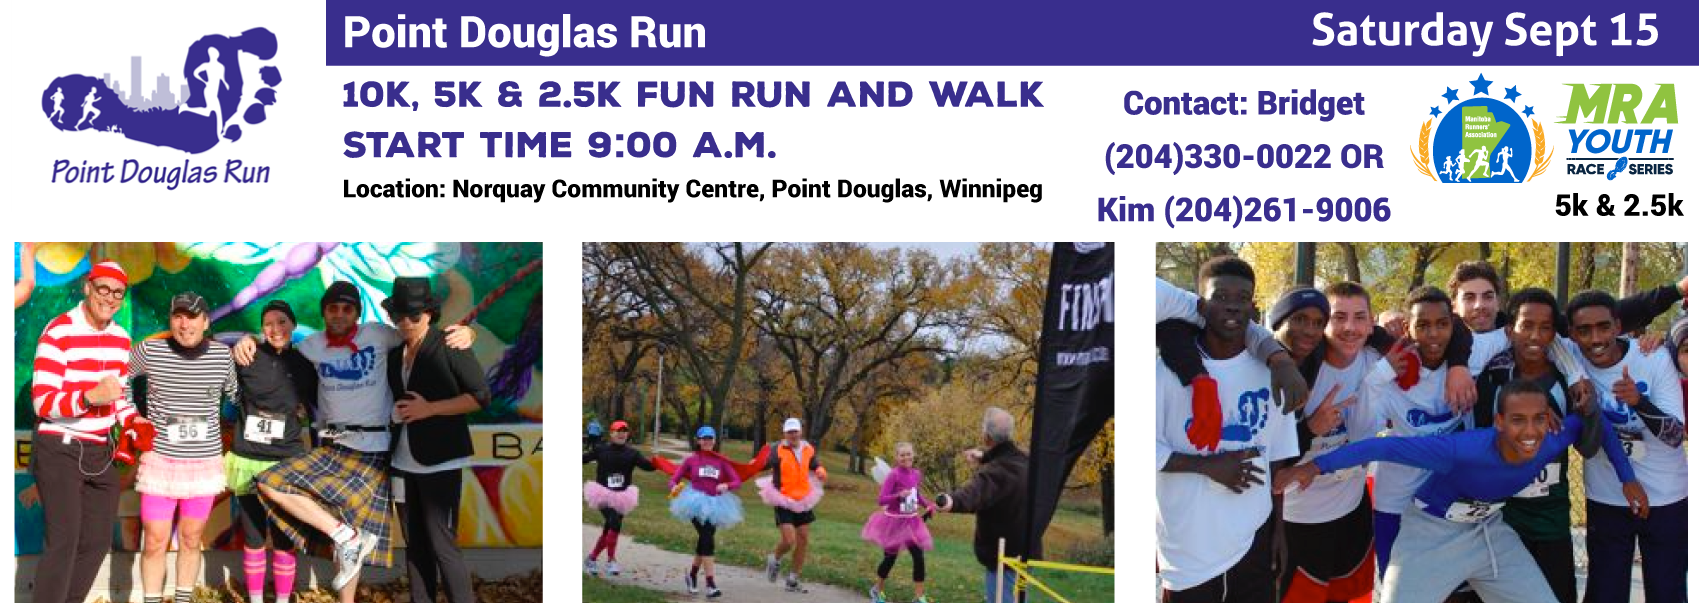 http://mraweb.ca/events/point-douglas-run/